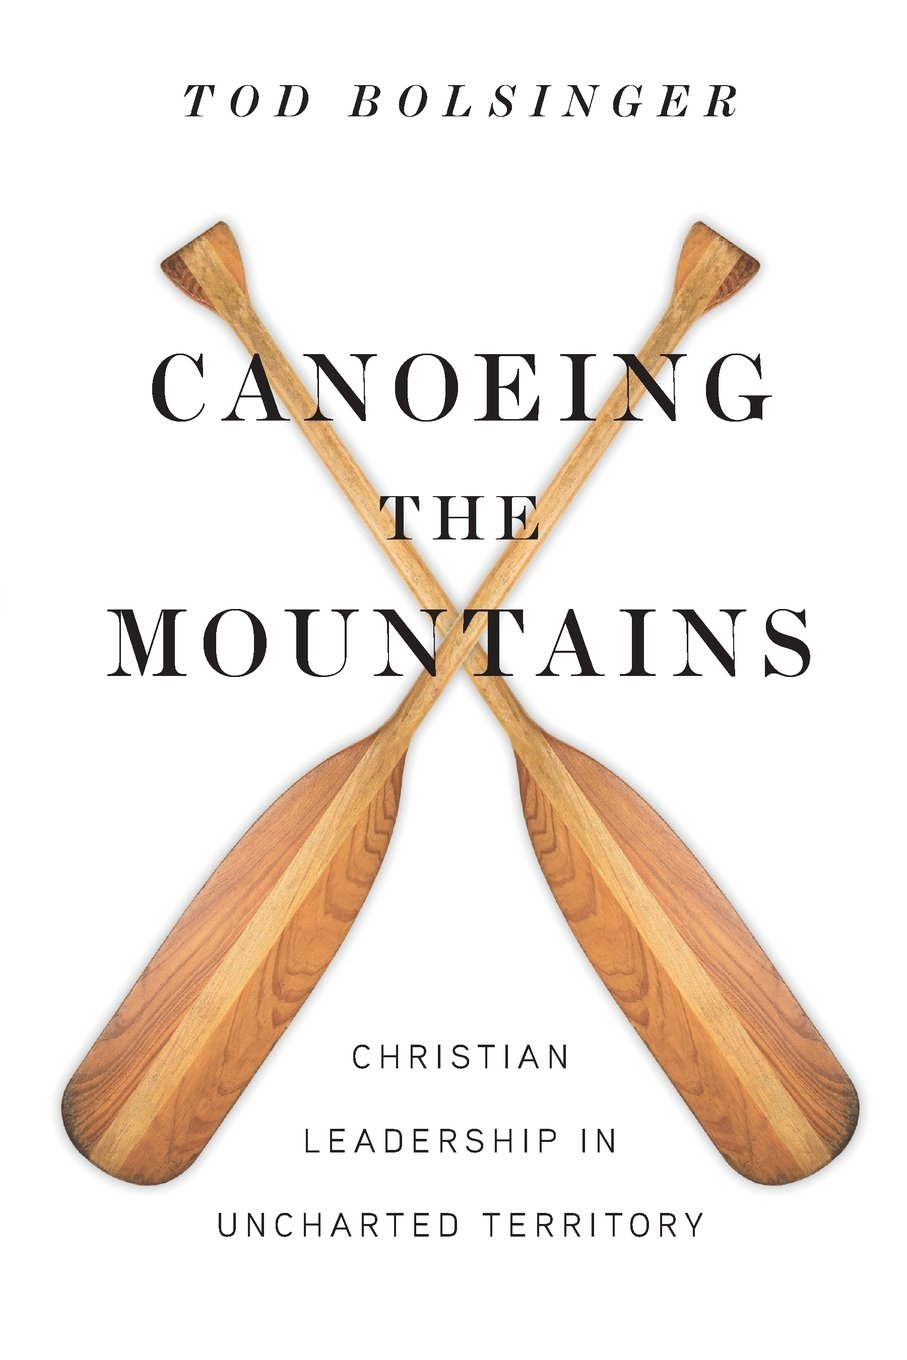 [4] Canoeing the Mountains: Christian Leadership in Uncharted Territory - by Tod Bolsinger